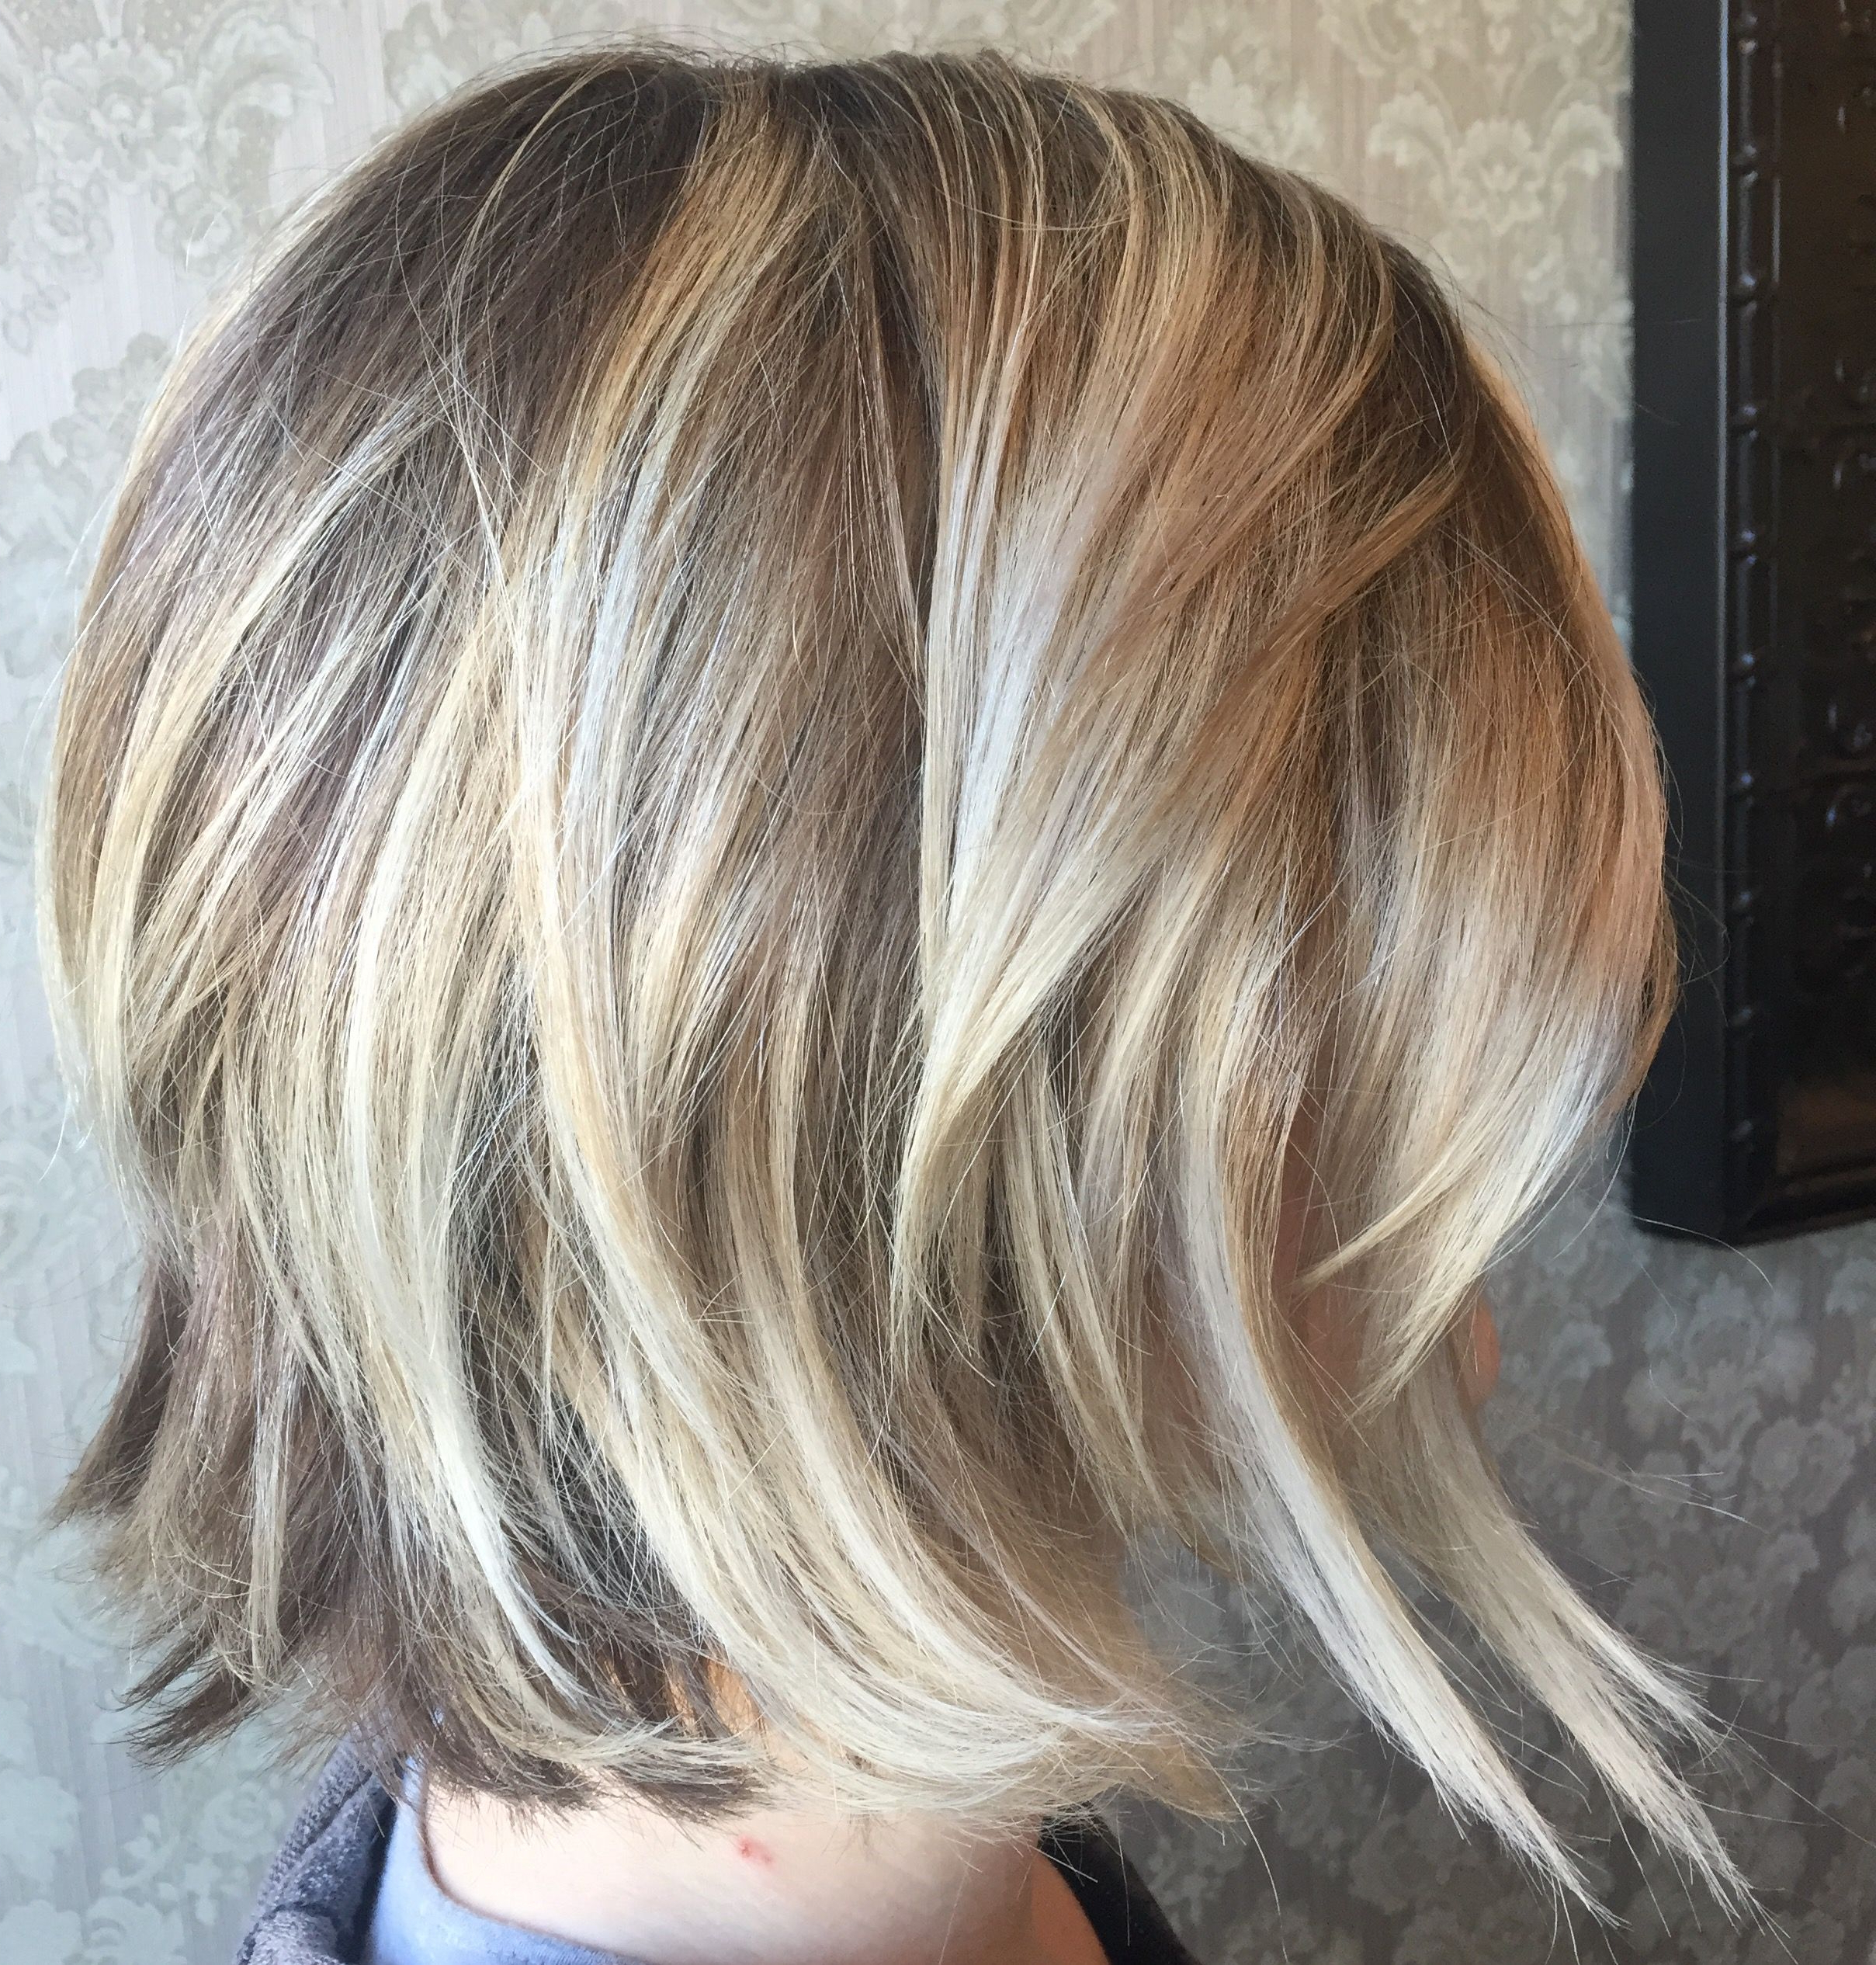 Blonde On Blonde Balayage Highlights, Angled Bob Haircut, Platinum Intended For Blonde Balayage Bob Hairstyles With Angled Layers (View 2 of 20)